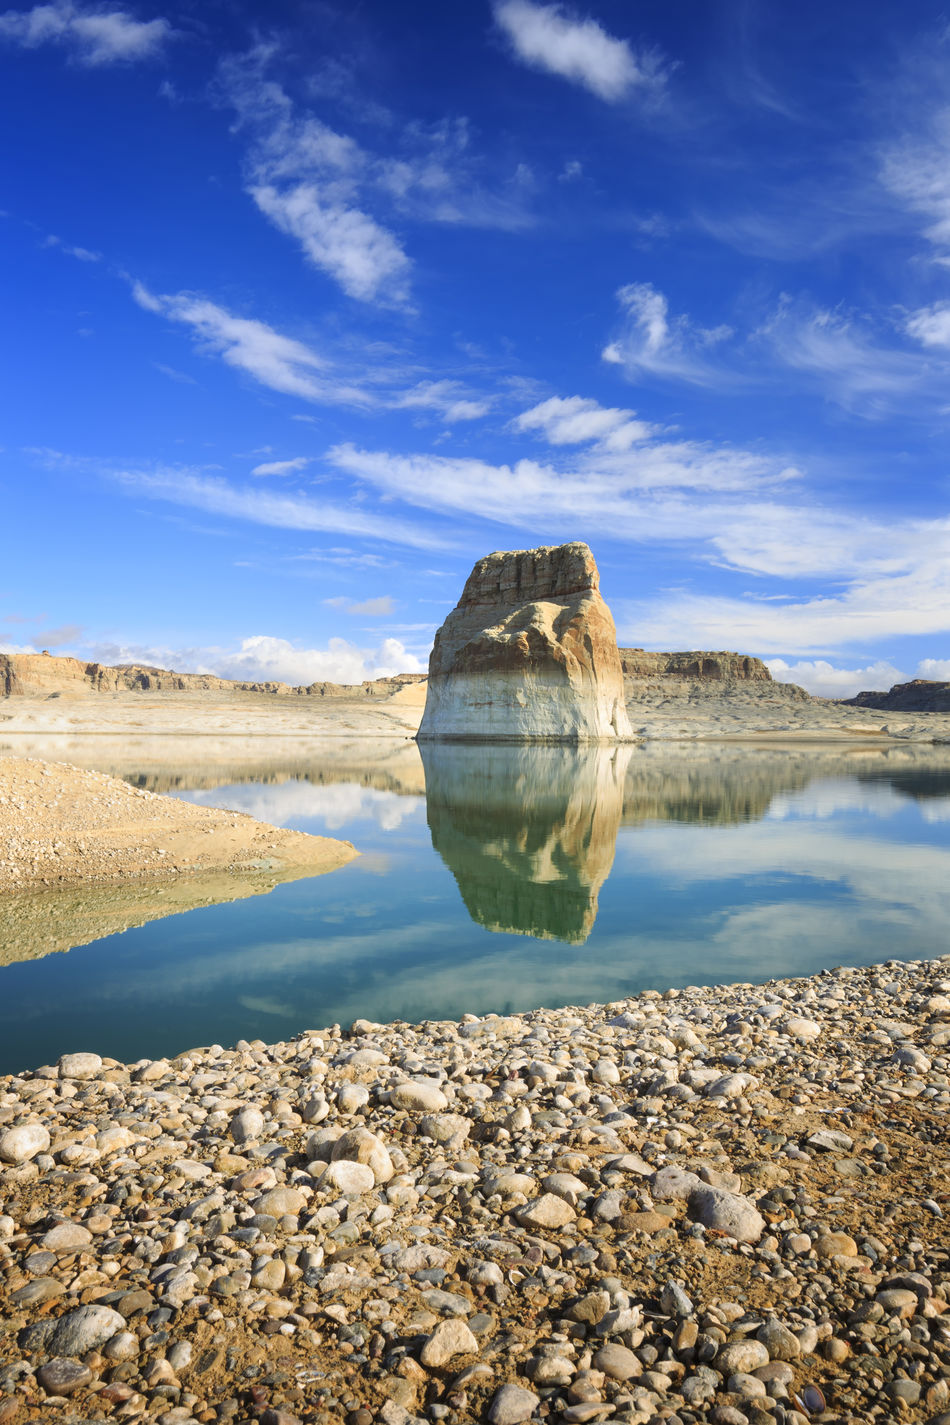 Lone Rock Lake Powell Glen Canyon Lake Water Water Reflections America Fine Art Landscapes Landscapes With WhiteWall I Hope My Pictures Touch Your Hart Canon Canon 5d Mark Lll EyeEm Best Shots EyeEm Nature Lover Nature Reflections In The Water Reflections The KIOMI Collection Blue Wave